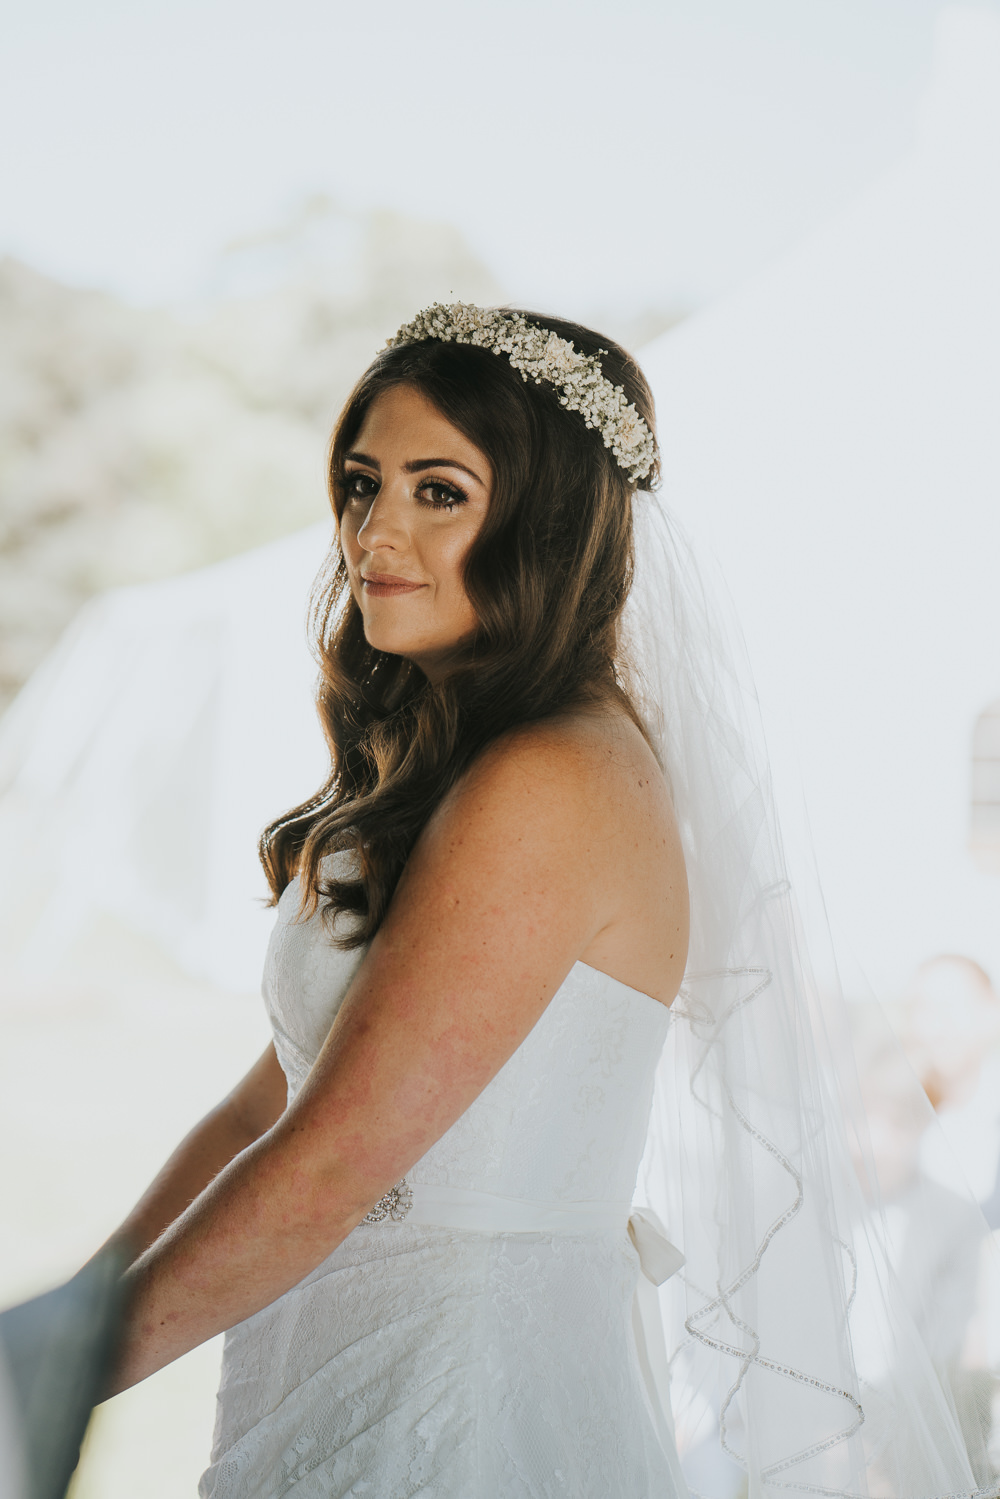 Intimate Outdoor Natural Relaxed Laid Back Summer Gazebo Ceremony Aisle Bride Gypsophila Crown | Prested Hall Wedding Grace Elizabeth Photography